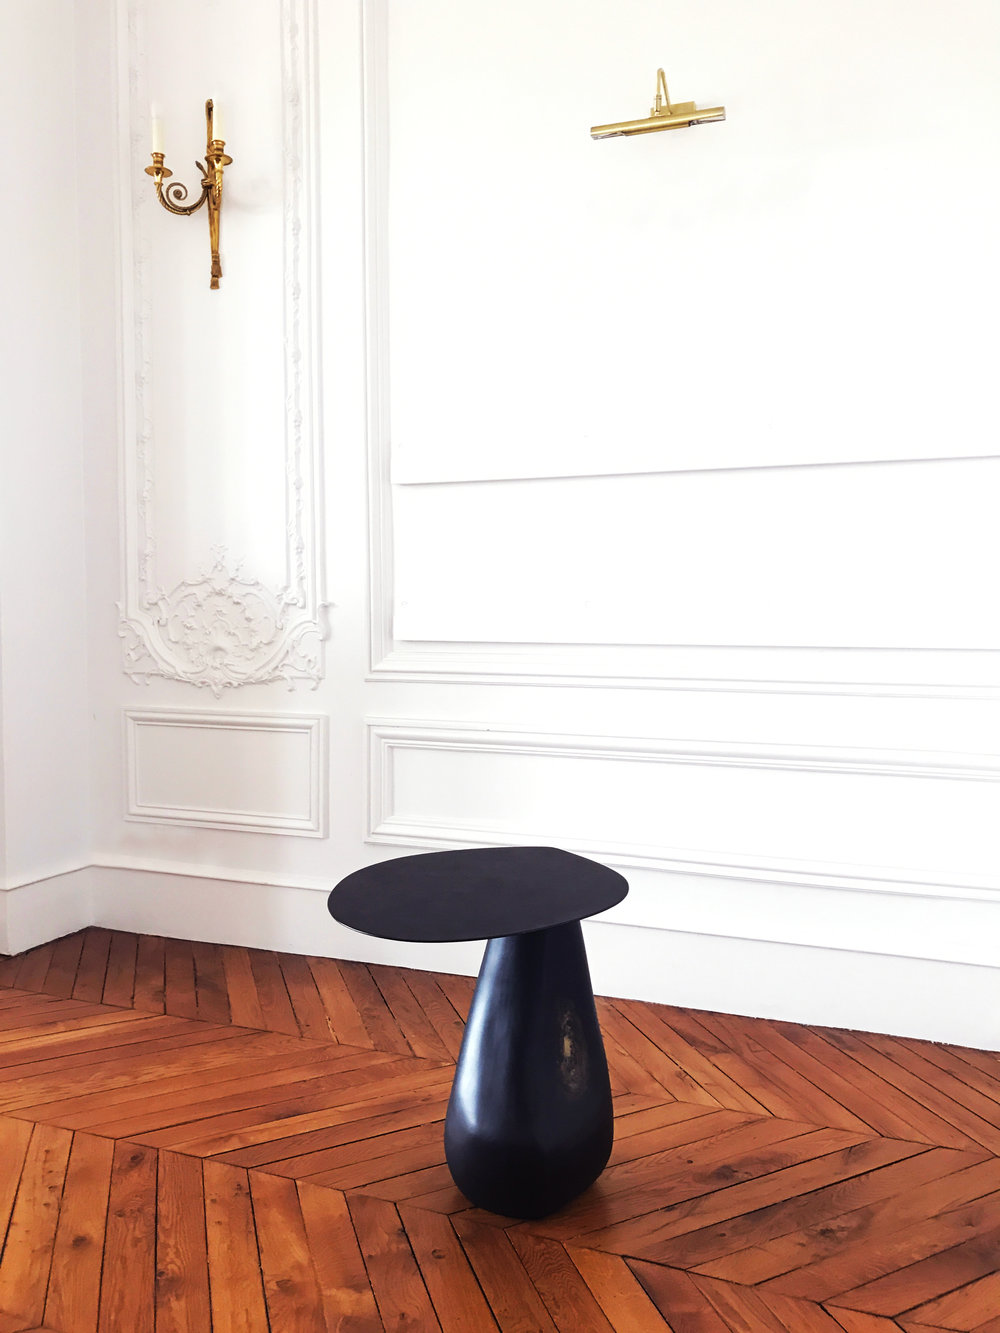 Dionis Table by Helena Sultan for KONEKT at Galerie SORS.  More info, contact   info@sorsparis.com